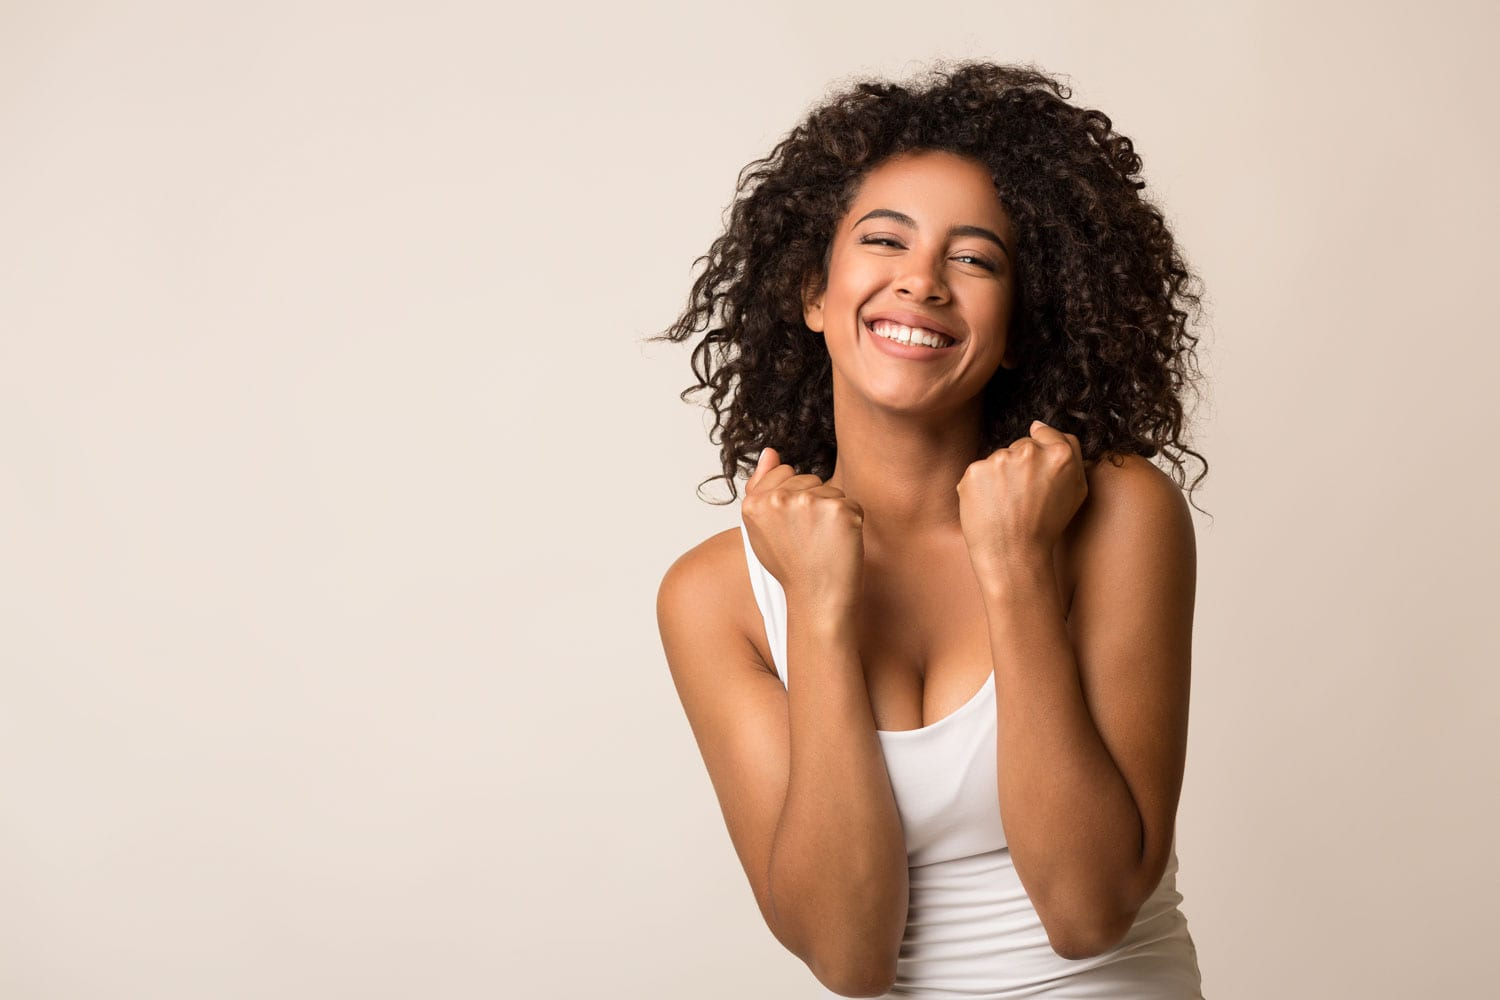 Happy pretty black girl celebrating her success on light background, copy space